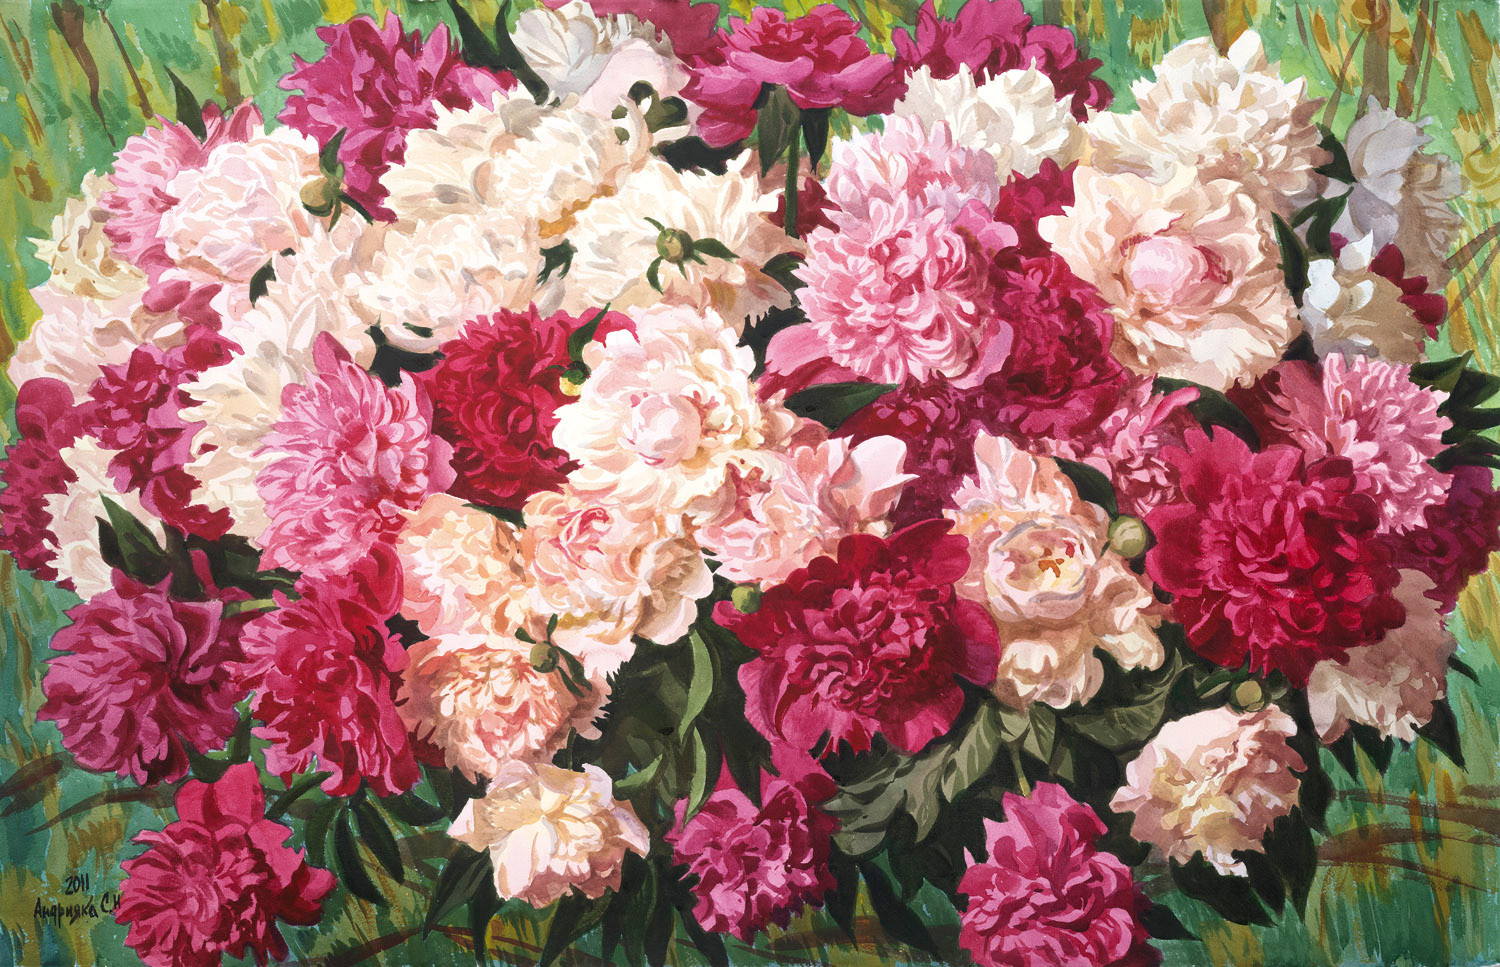 The Charming scent of peonies, 2011